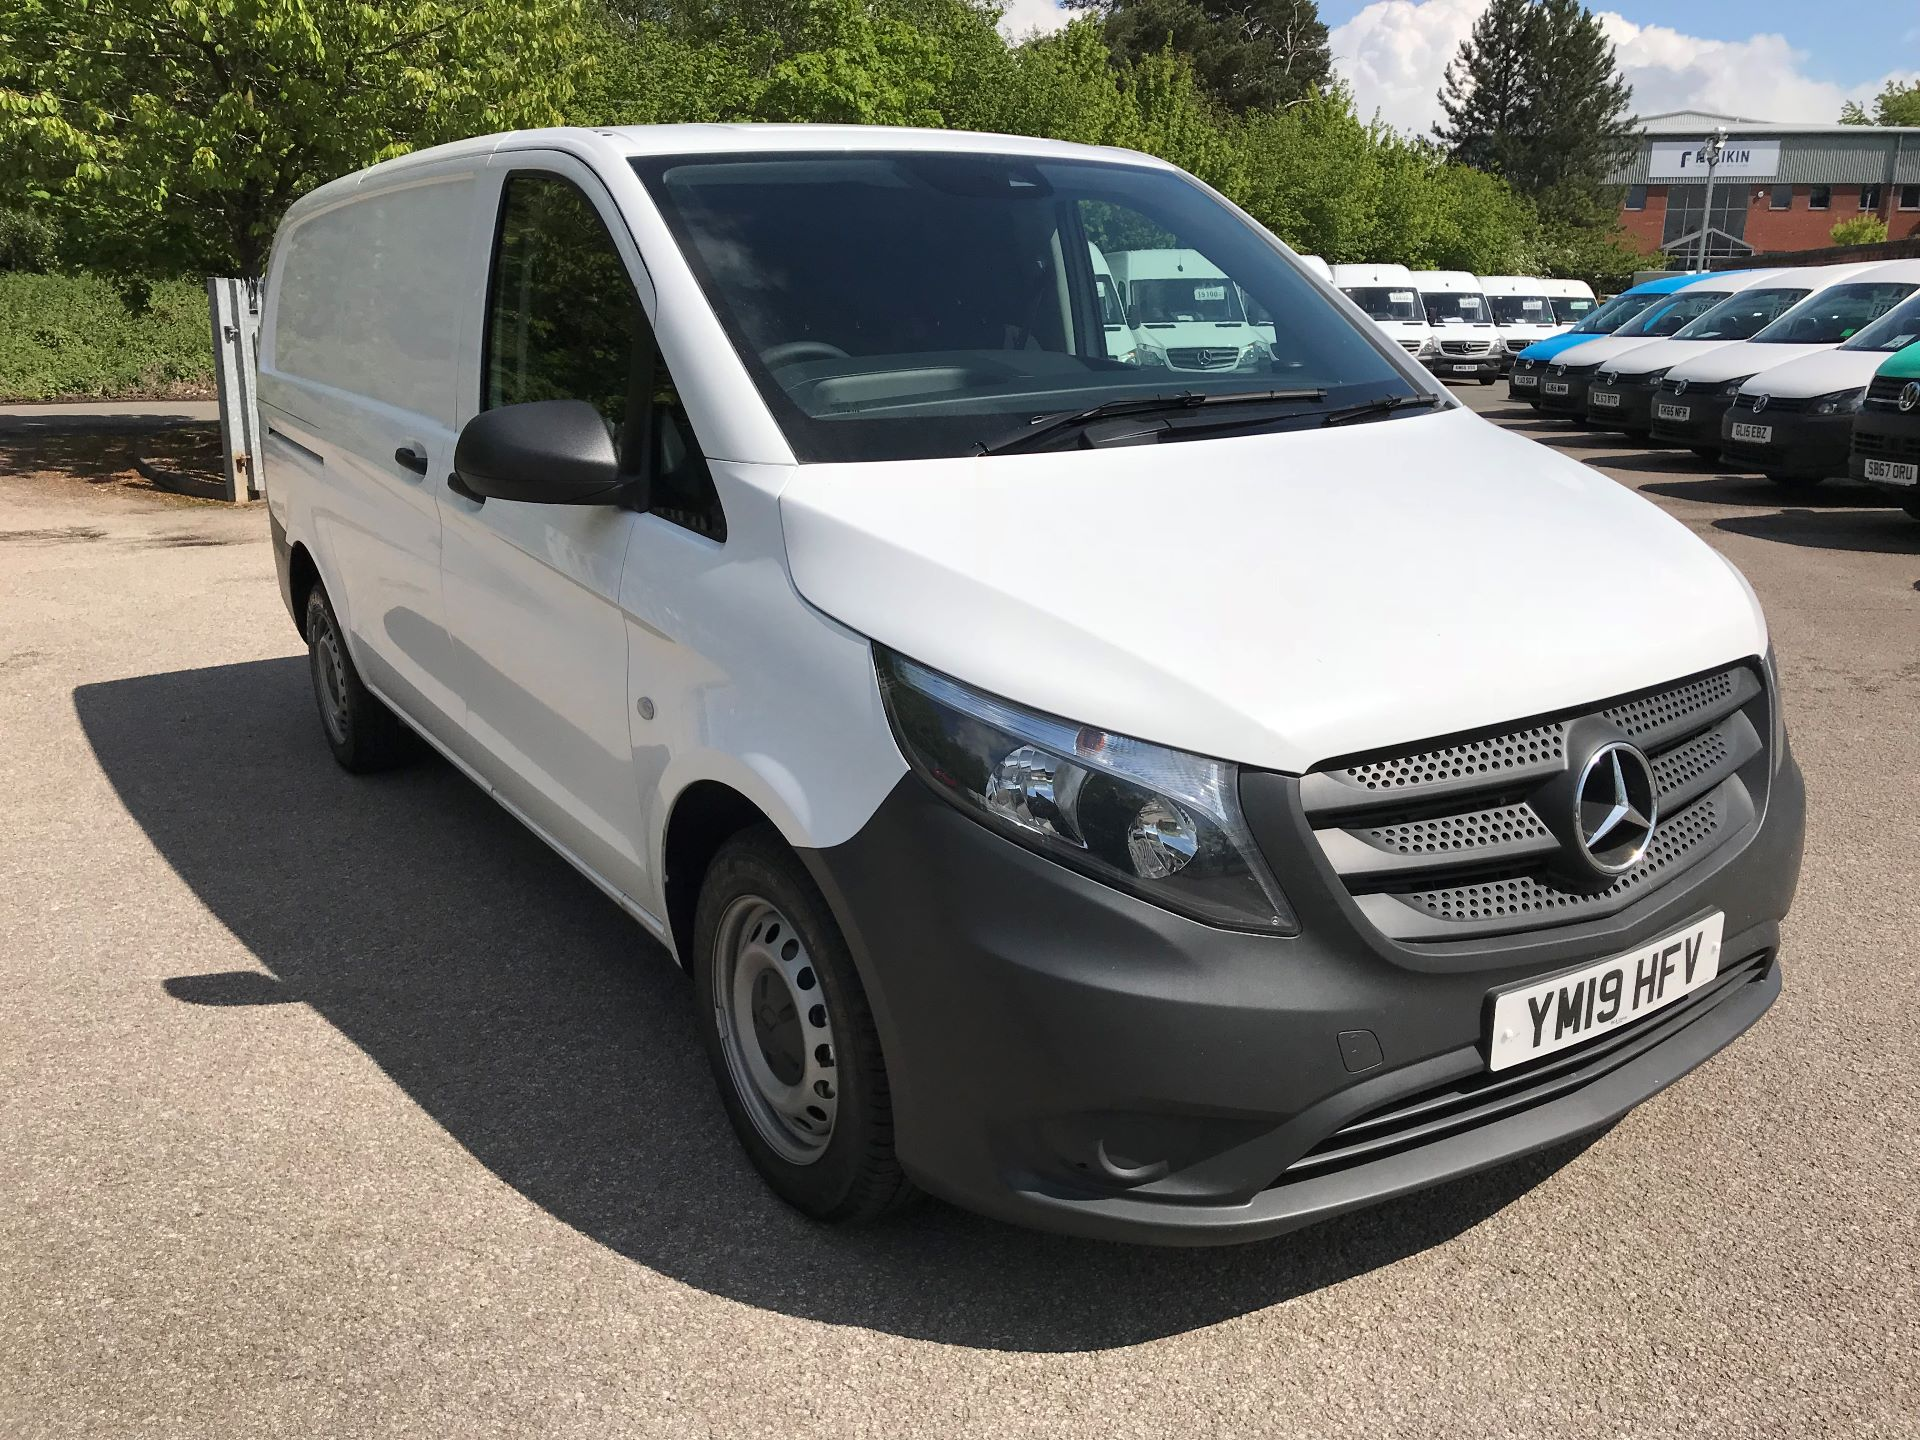 2019 Mercedes-Benz Vito 111Cdi Van Euro 6 Massive specification A/C (YM19HFV) Image 1